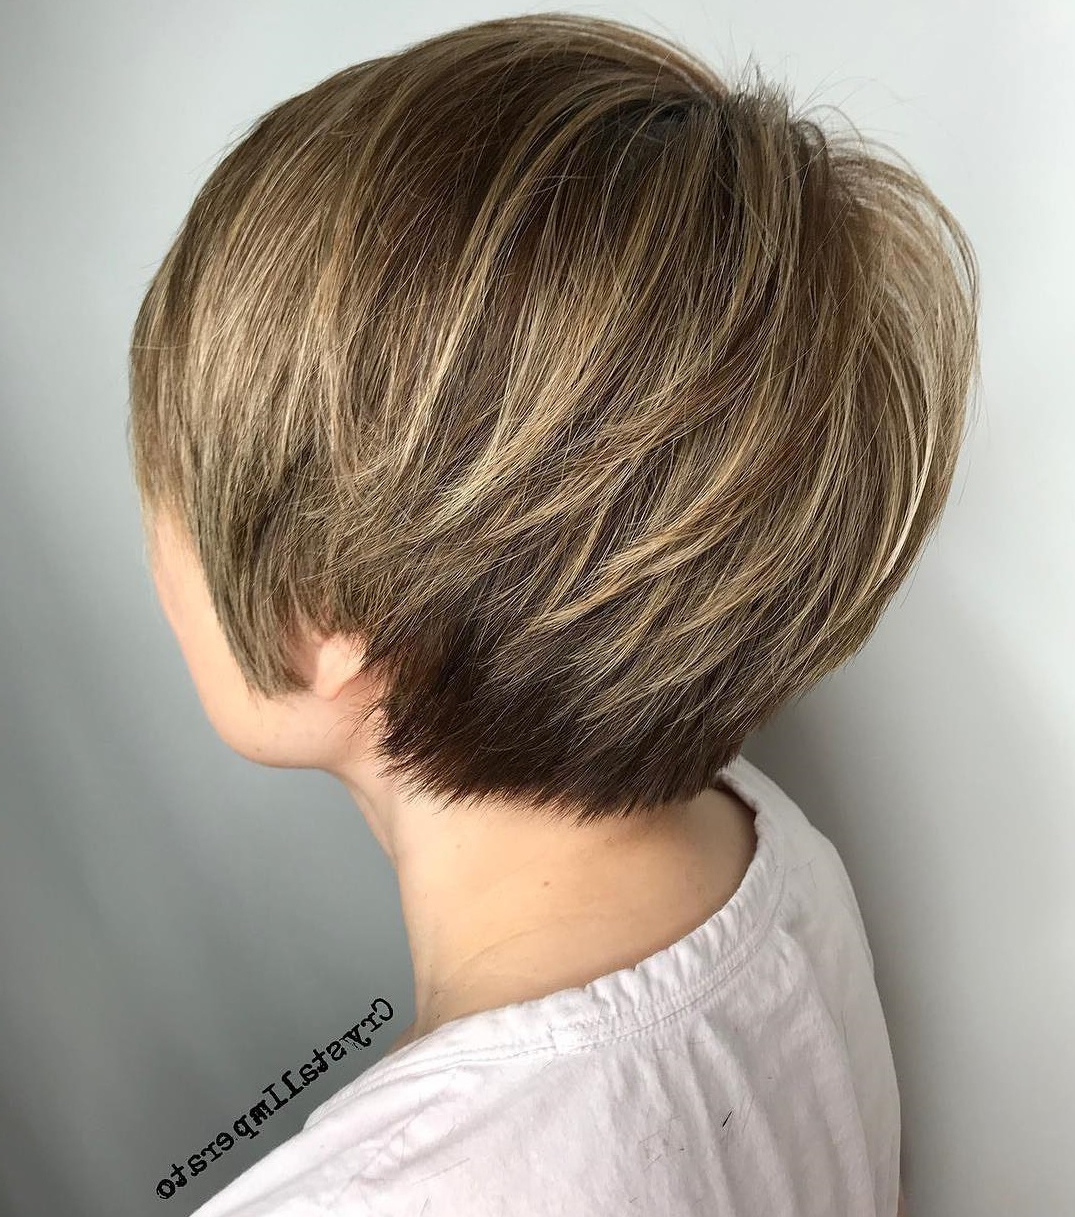 50 Hottest Pixie Cut Hairstyles In 2019 With Asymmetrical Shaggy Pixie Hairstyles (View 8 of 20)